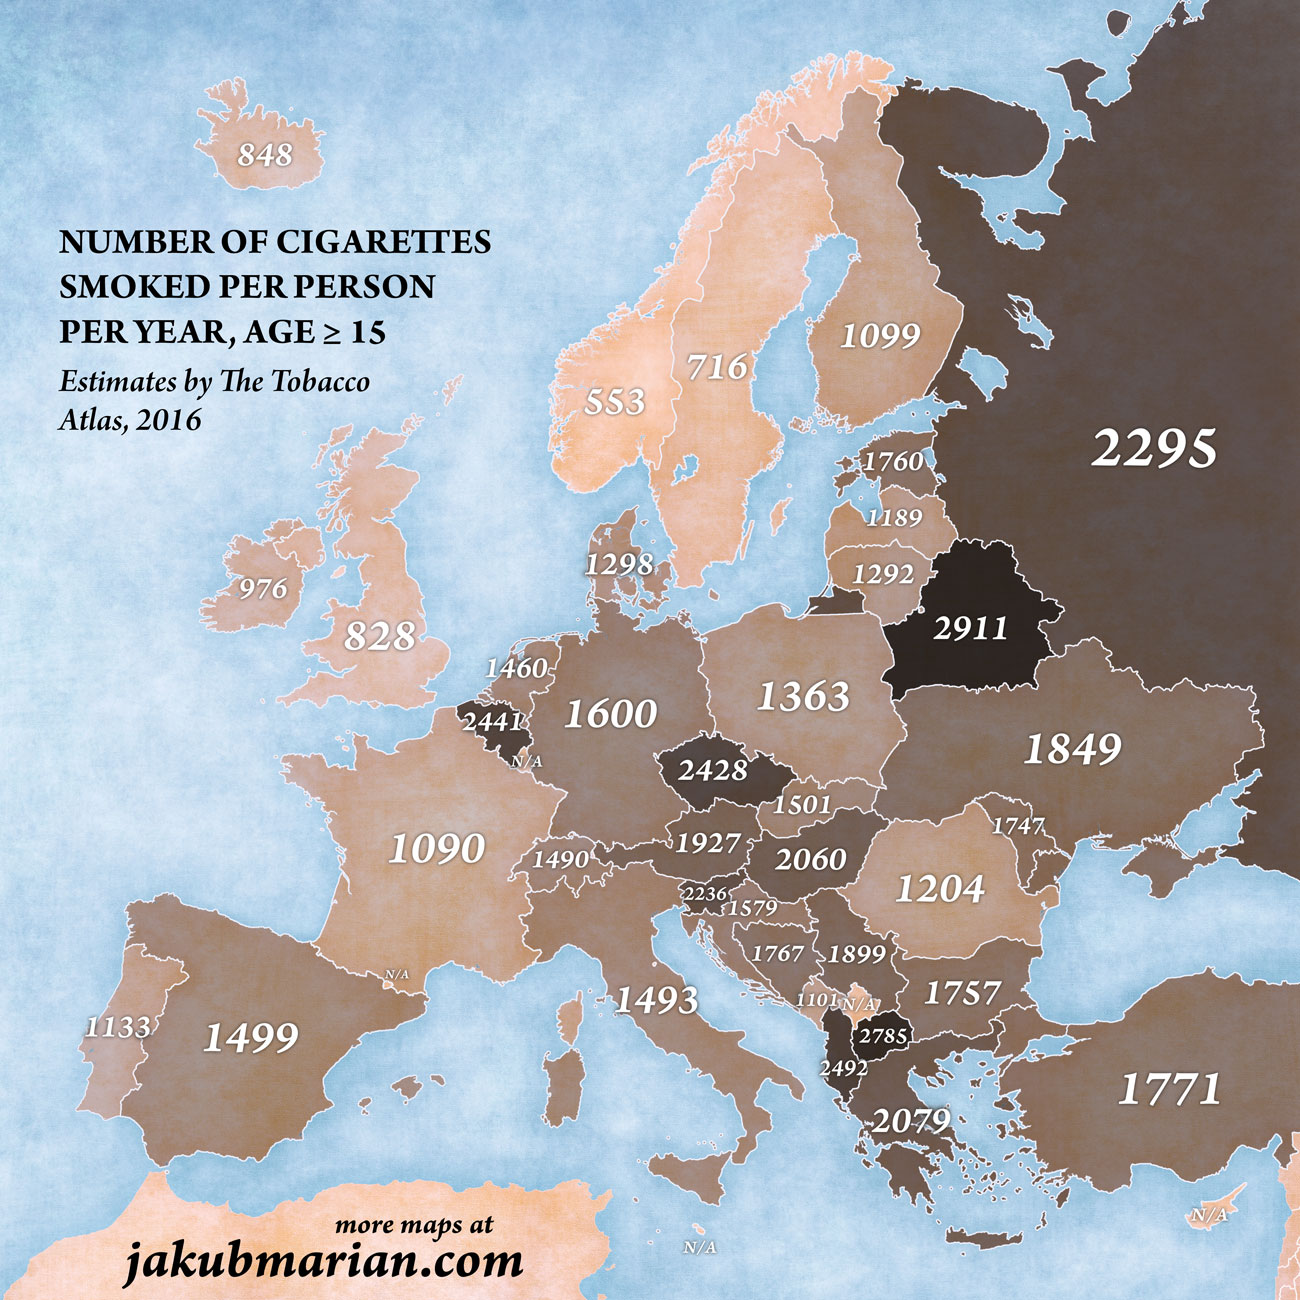 Cigarette consumption by country in Europe